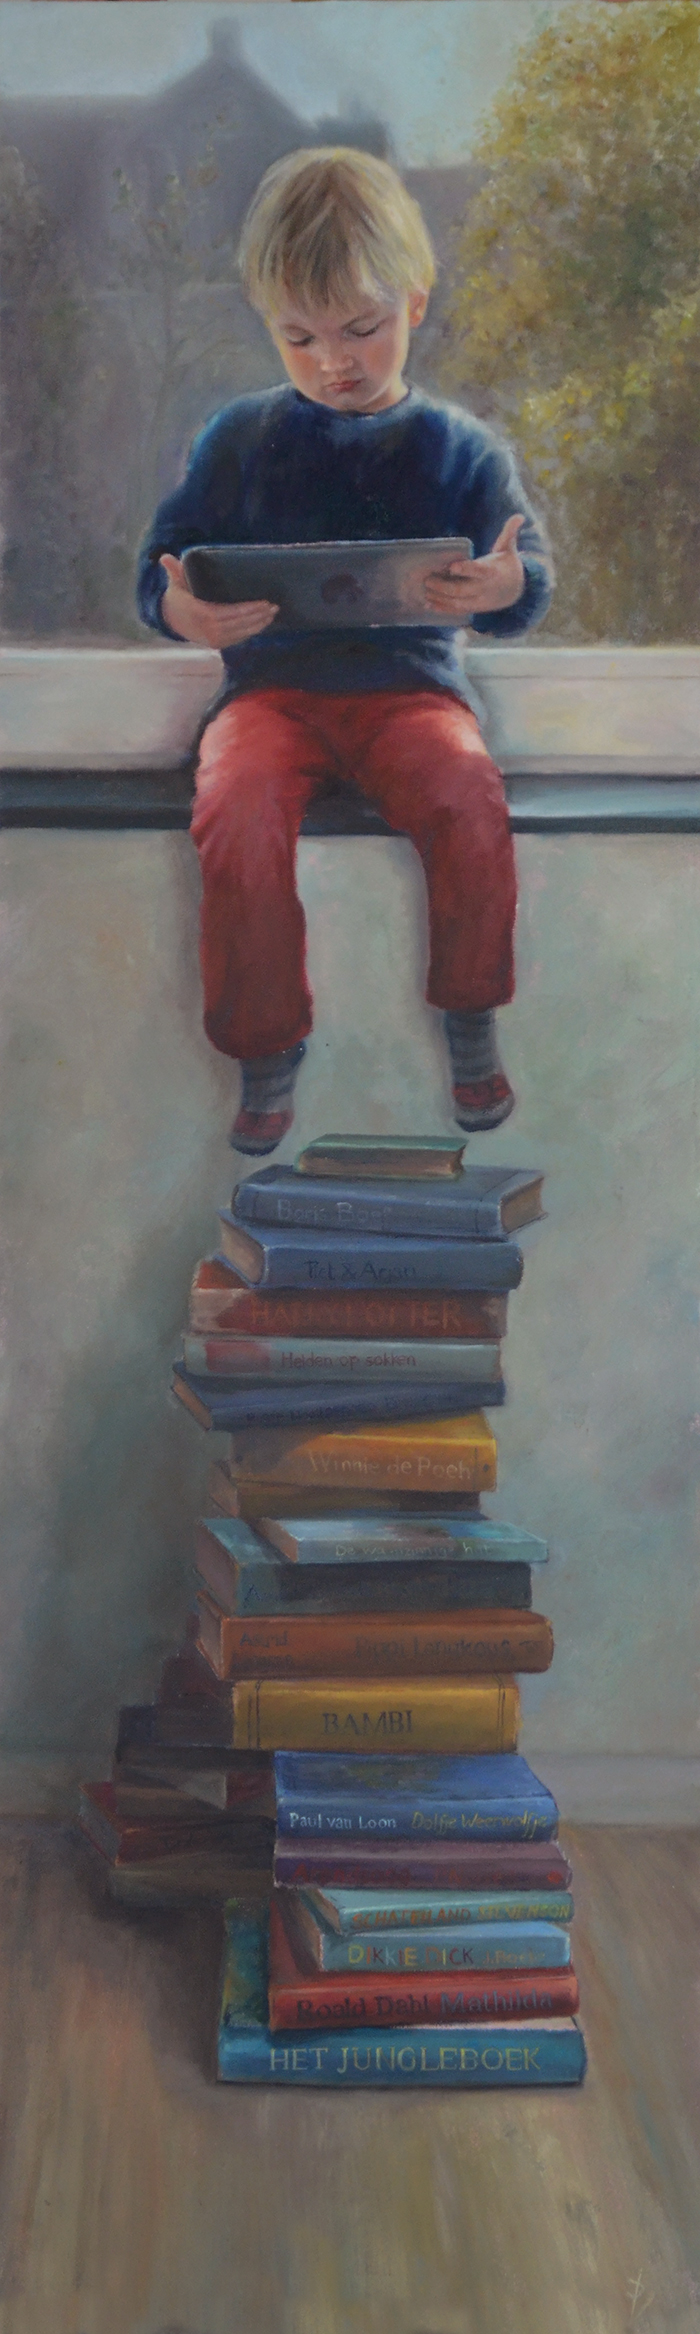 painting of boy reading iPad instead of books